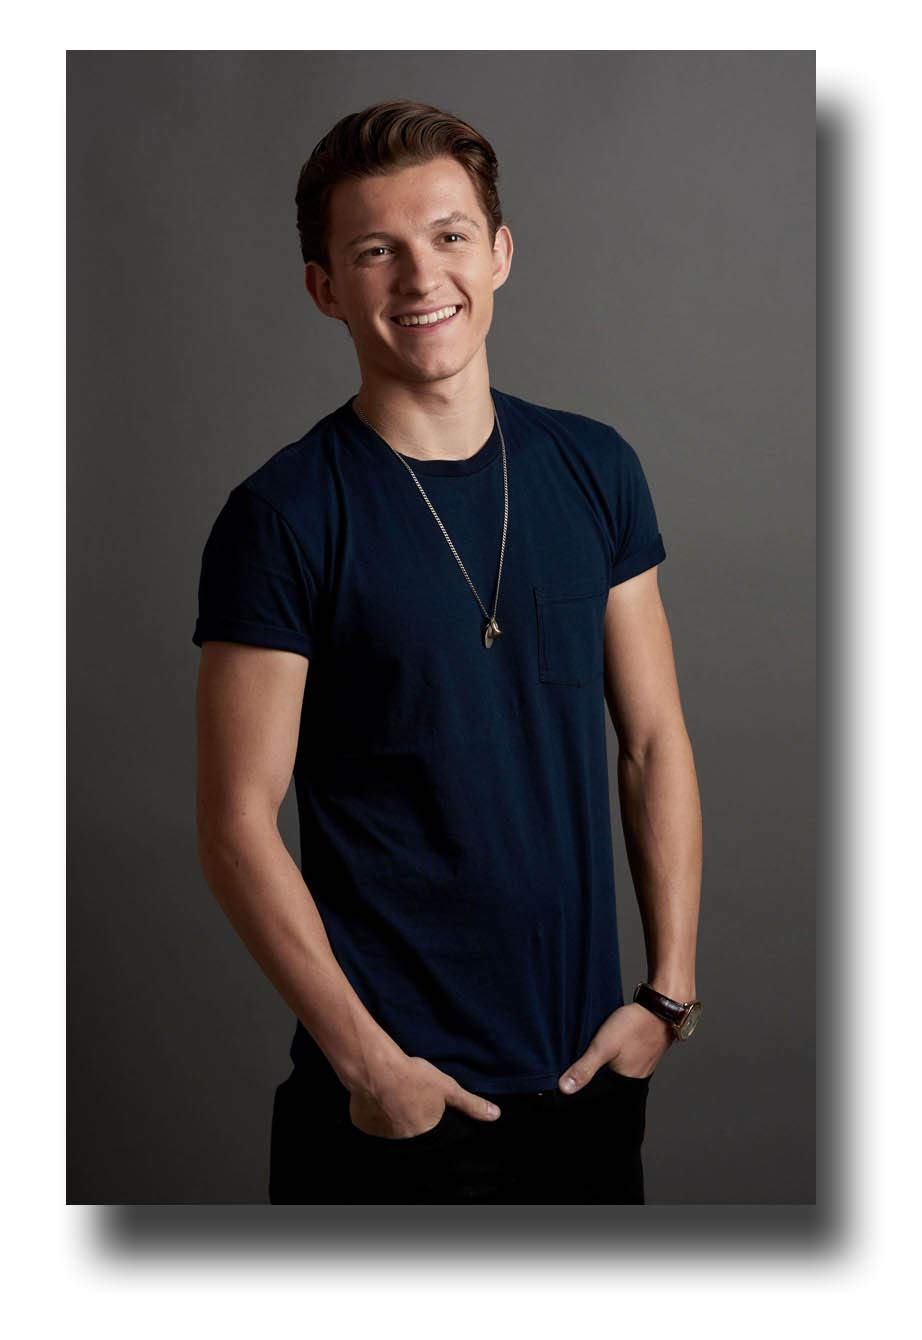 Sherwood Goods 12x18 Poster Rare Tom Holland New Limited Edition